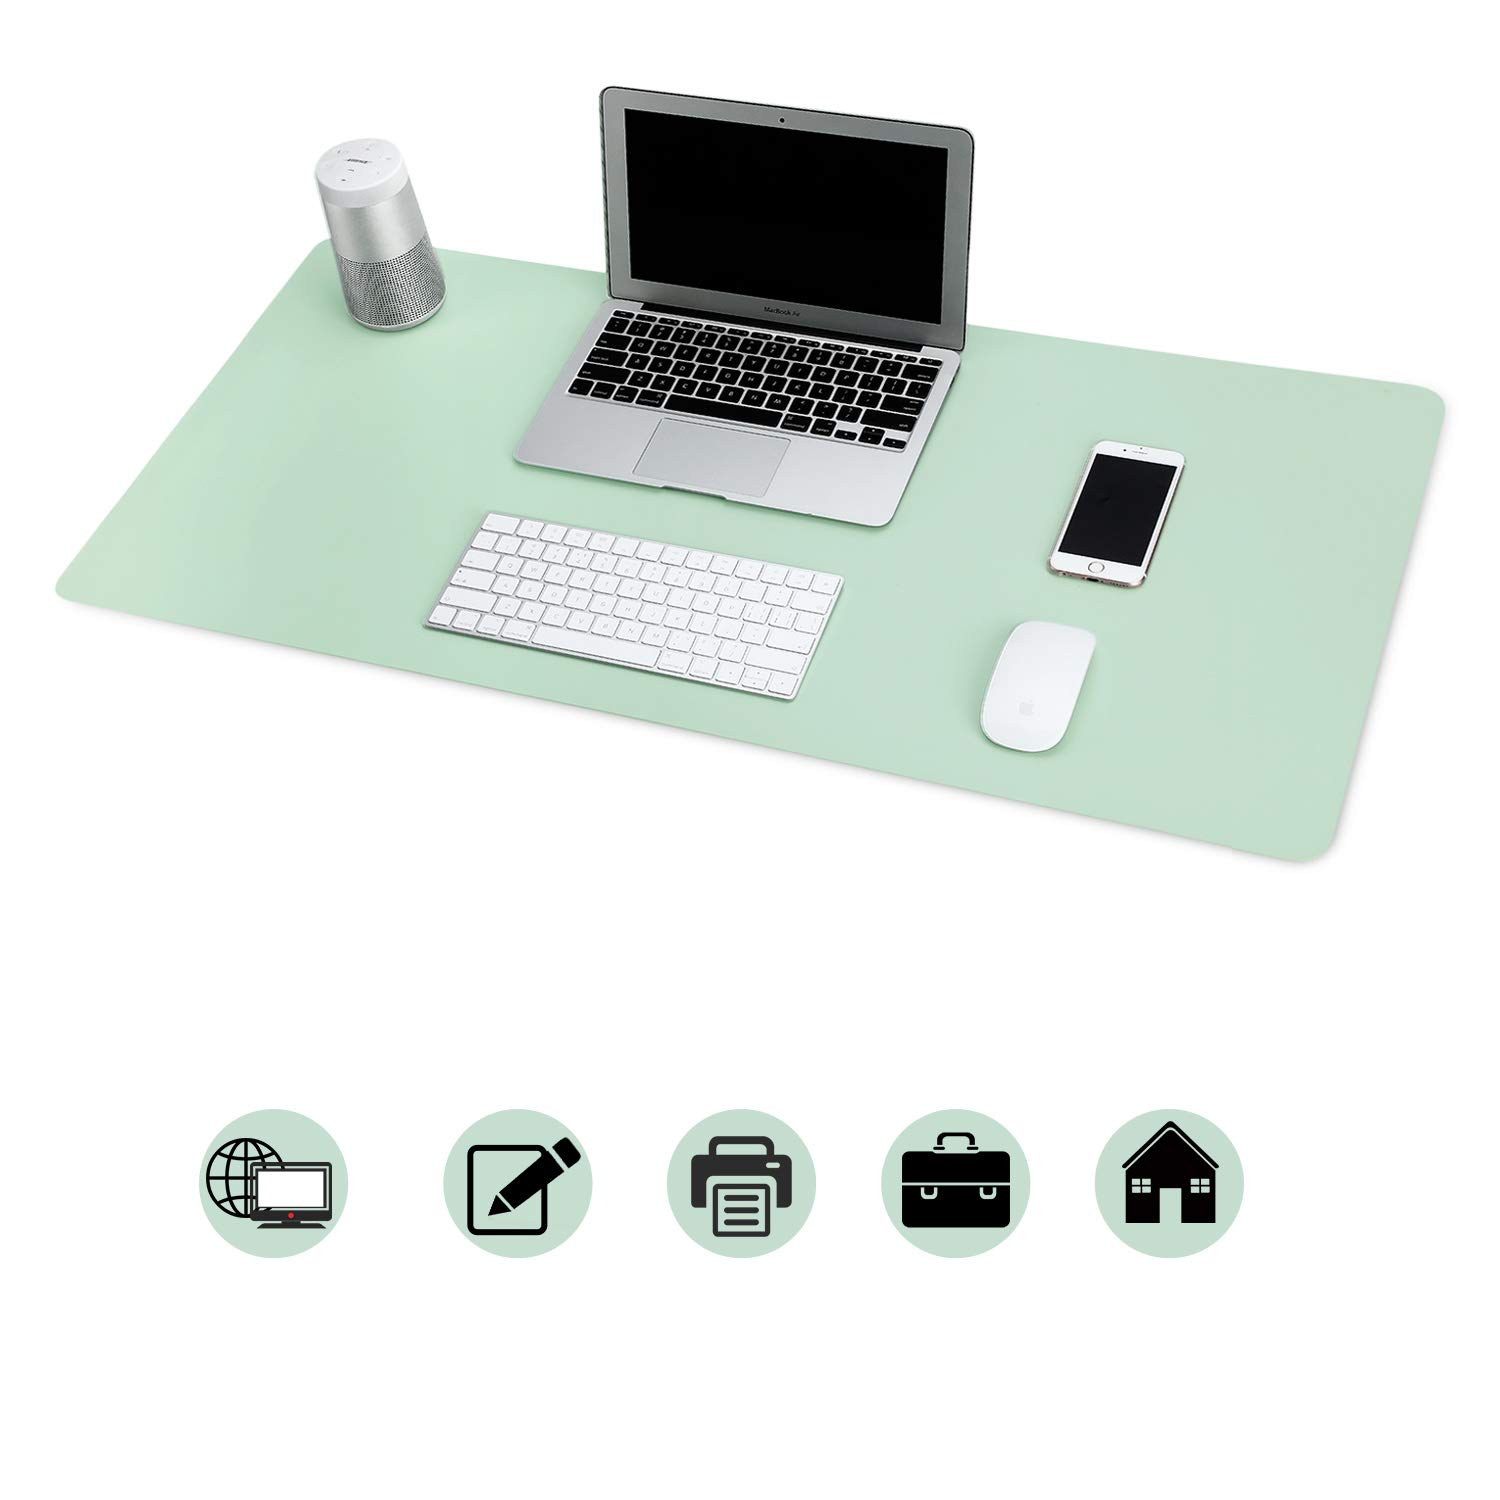 Office Desk Pad, Mouse Pad - Desk Decor Non-Slip Spill-Resistant, Thick Extended PU Leather Desk Blotter 31.5×15.7in (Green) by BUBM